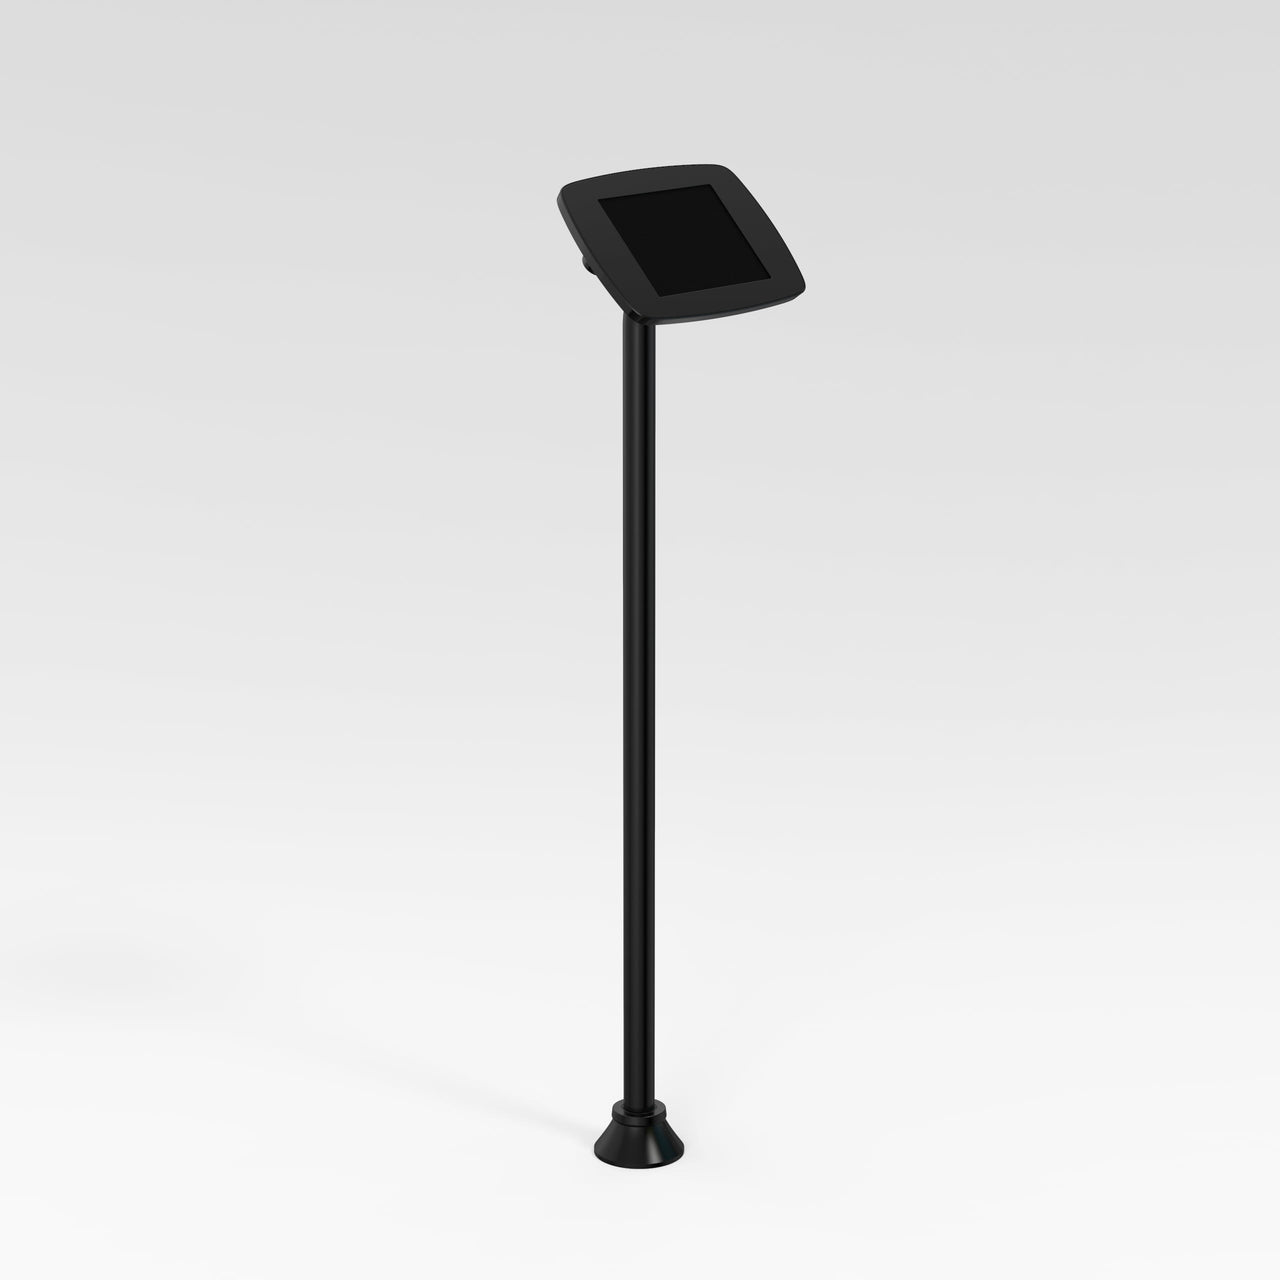 Bouncepad Floorstanding Slim - A secure tablet & iPad floor stand in black